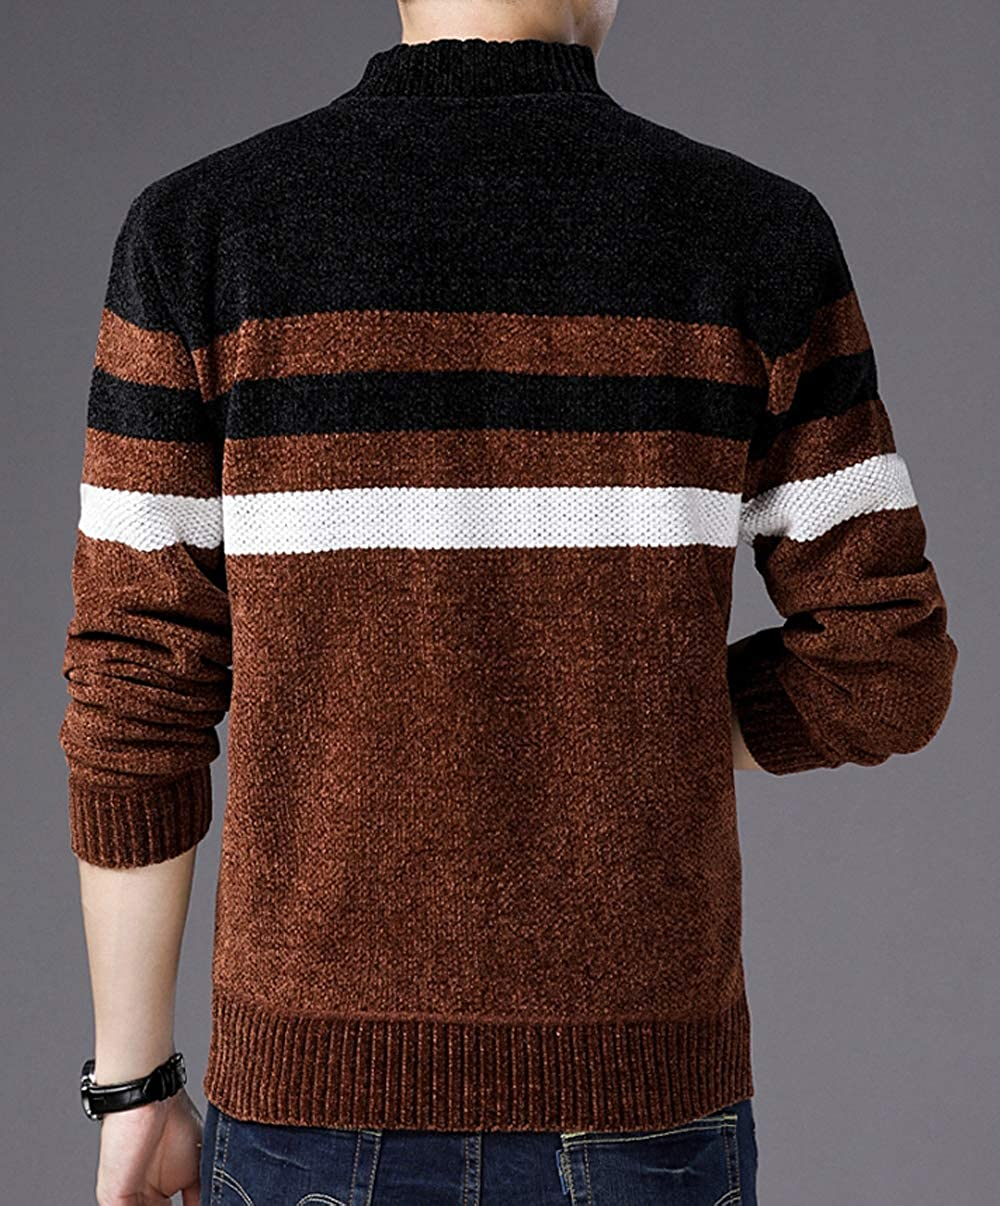 Fuwenni Mens Casual Slim Fit Stripes Knitted Zipper Cardigan Sweaters